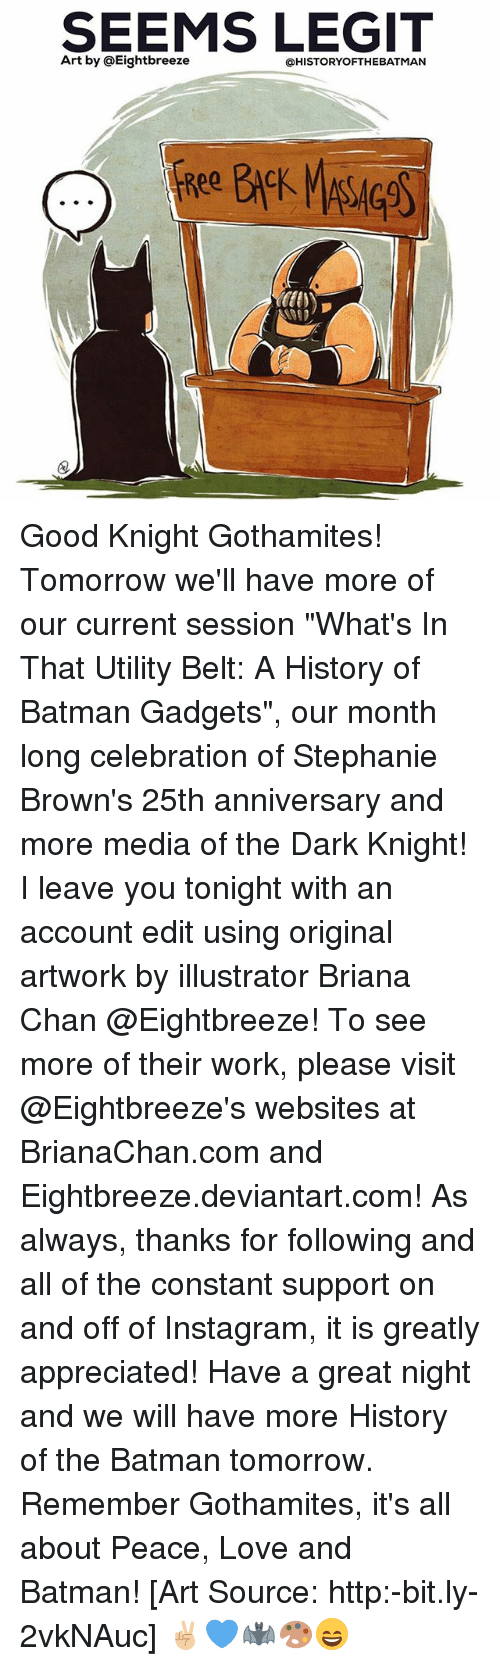 """Legitably: SEEMS LEGIT  Art by @Eightbreeze  @HISTORYOFTHEBATMAN Good Knight Gothamites! Tomorrow we'll have more of our current session """"What's In That Utility Belt: A History of Batman Gadgets"""", our month long celebration of Stephanie Brown's 25th anniversary and more media of the Dark Knight! I leave you tonight with an account edit using original artwork by illustrator Briana Chan @Eightbreeze! To see more of their work, please visit @Eightbreeze's websites at BrianaChan.com and Eightbreeze.deviantart.com! As always, thanks for following and all of the constant support on and off of Instagram, it is greatly appreciated! Have a great night and we will have more History of the Batman tomorrow. Remember Gothamites, it's all about Peace, Love and Batman! [Art Source: http:-bit.ly-2vkNAuc] ✌🏼💙🦇🎨😄"""